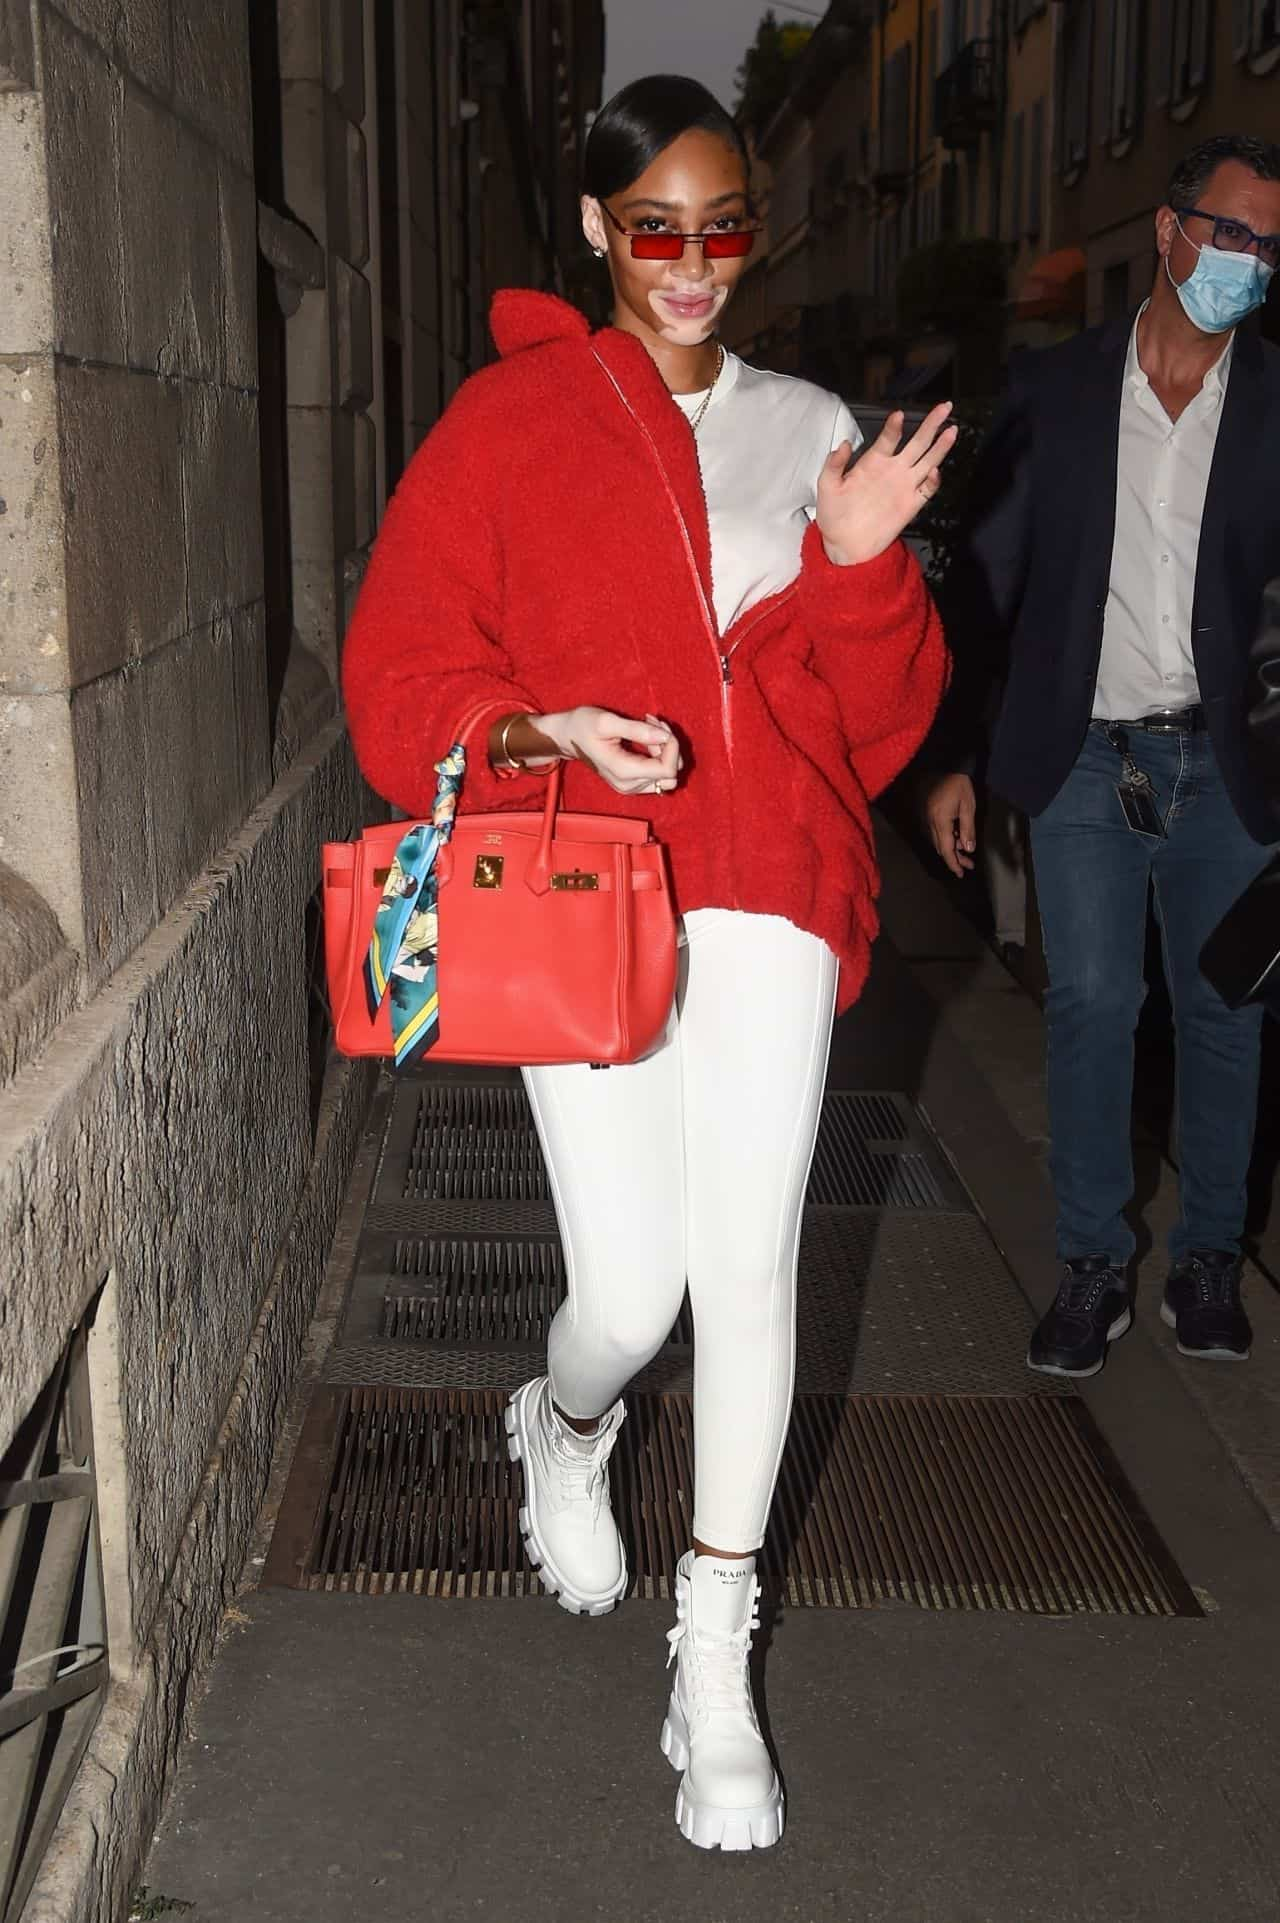 Winnie Harlow Wore a White Outfit with a Red Jacket at Milan Fashion Week